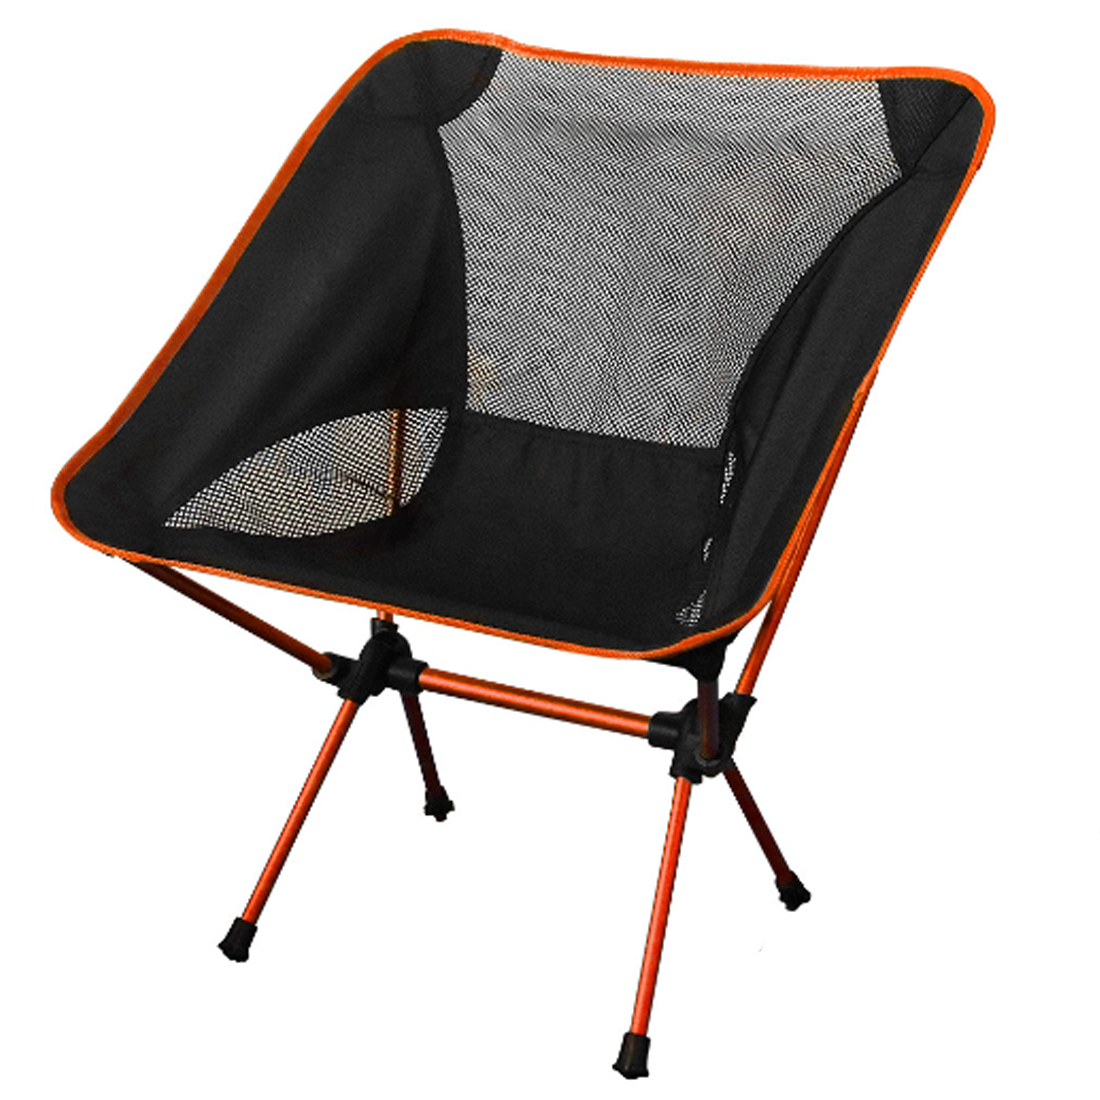 Ultra Light Folding Fishing Chair Seat for Outdoor Camping Leisure Picnic Beach Chair Other Fishing Tools NEW